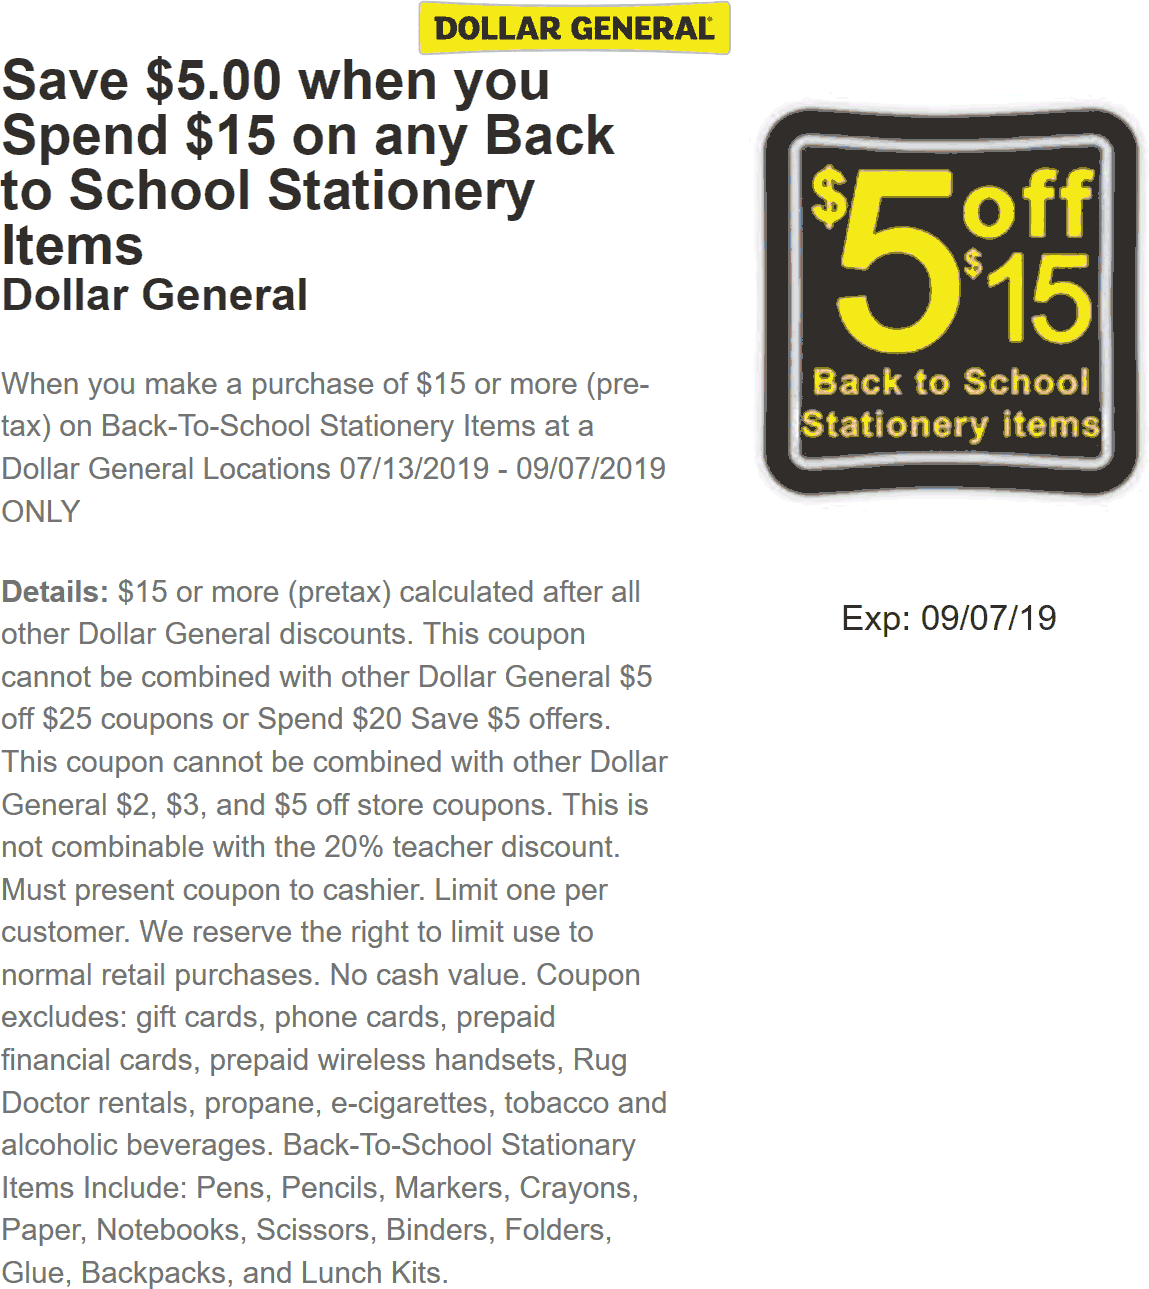 Back To School Coupon July 2020 $5 off $15 on Back to School stationery at Dollar General